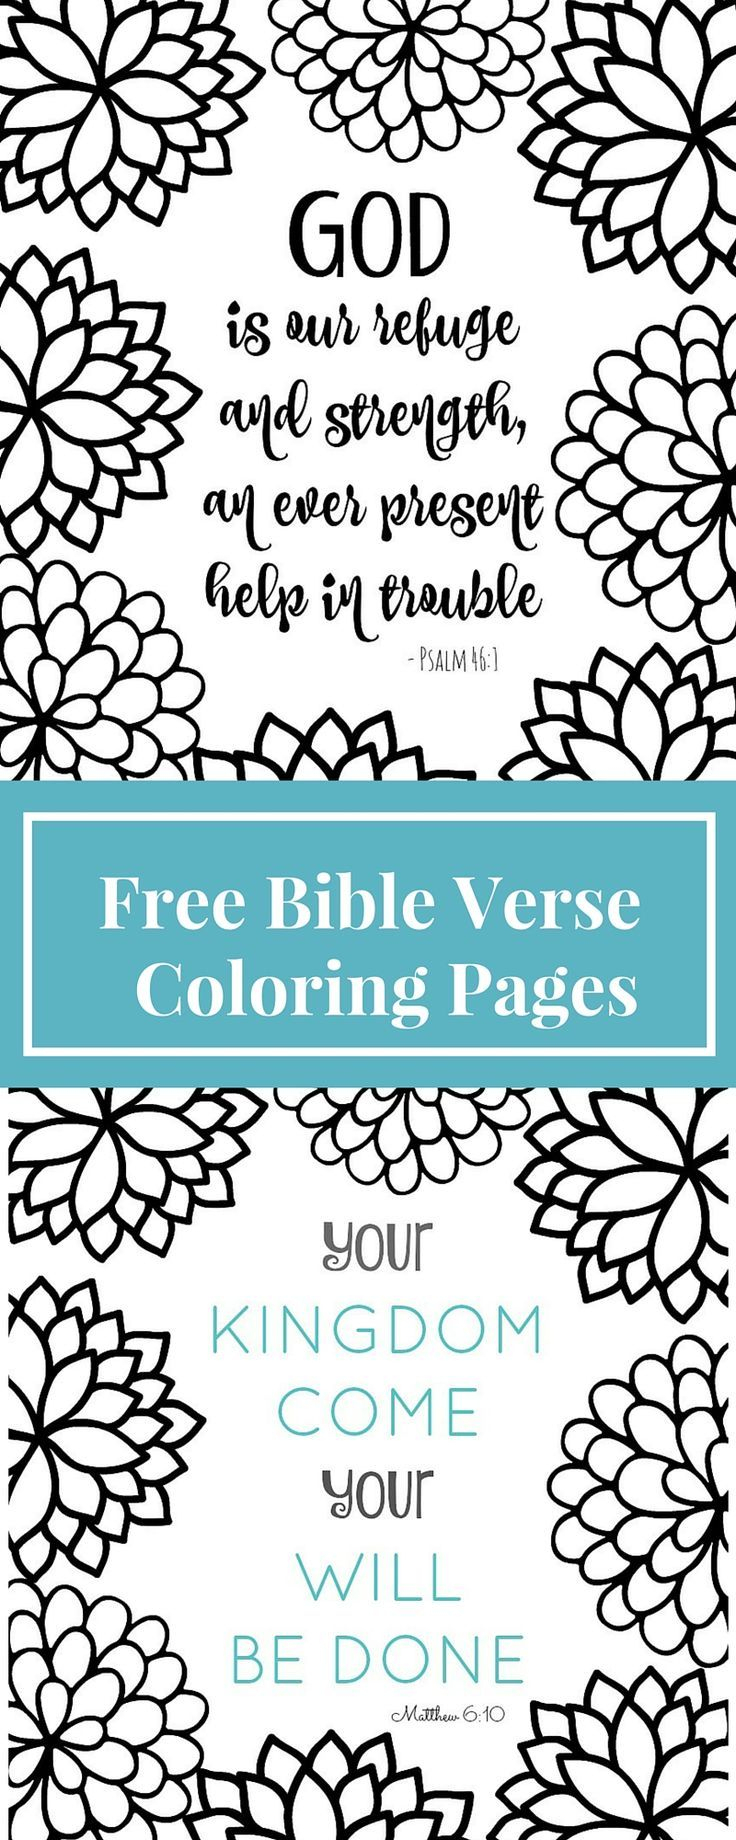 Free Printable Bible Verse Coloring Pages With Bursting Blossoms - Free Printable Bible Coloring Pages With Verses